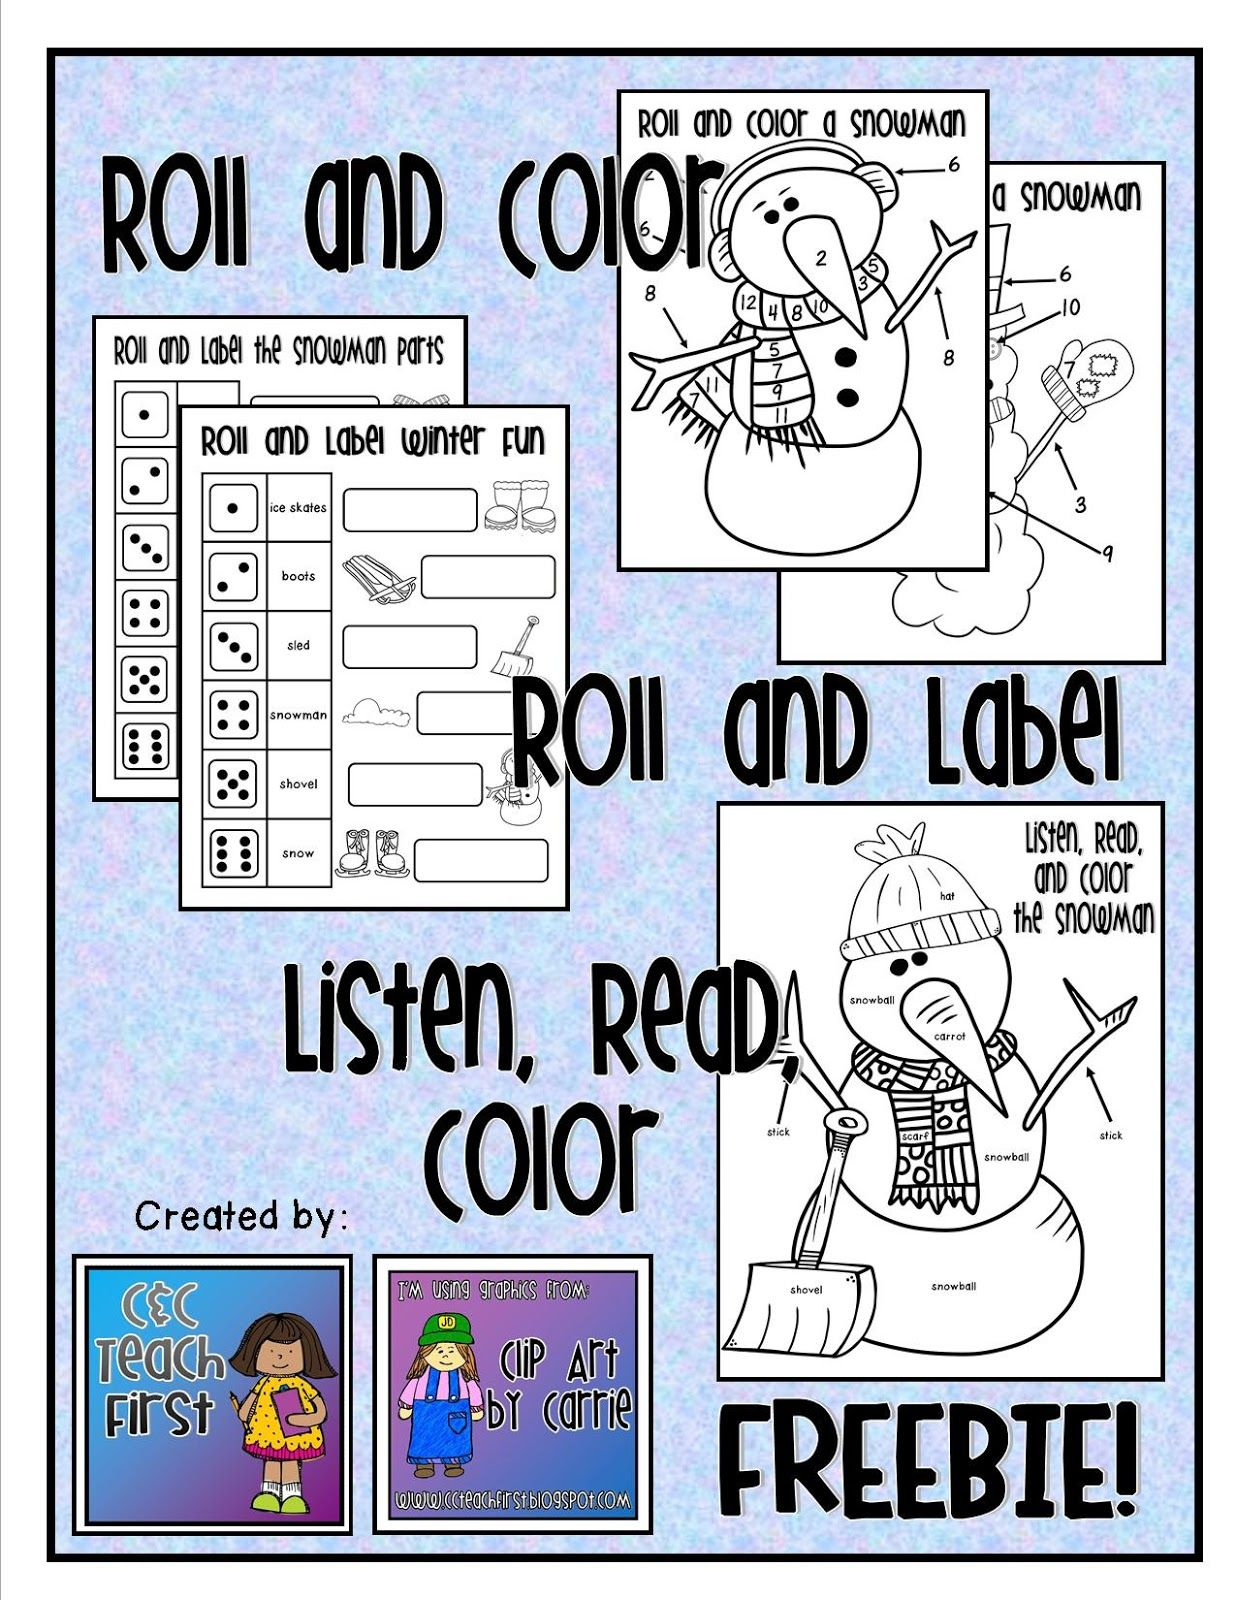 Roll Color Label And Read The Snowman Freebie By C Amp C Teach First